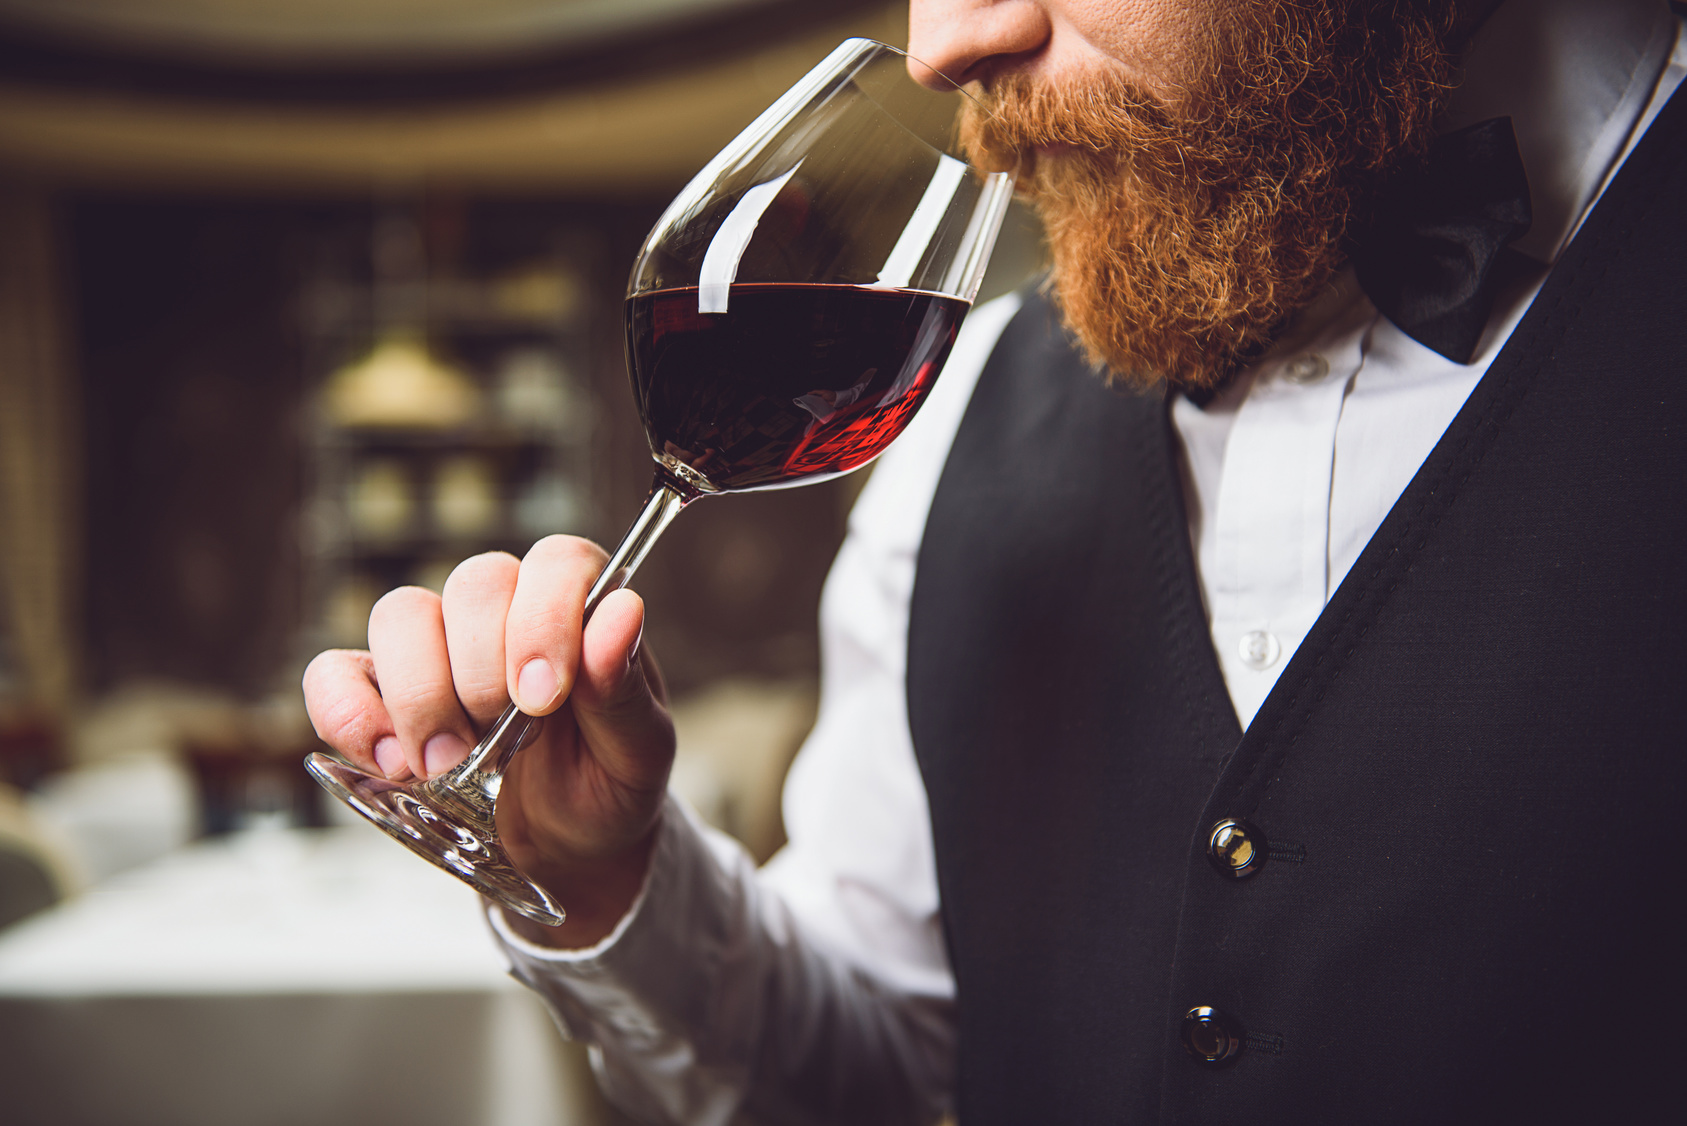 personal sommelier